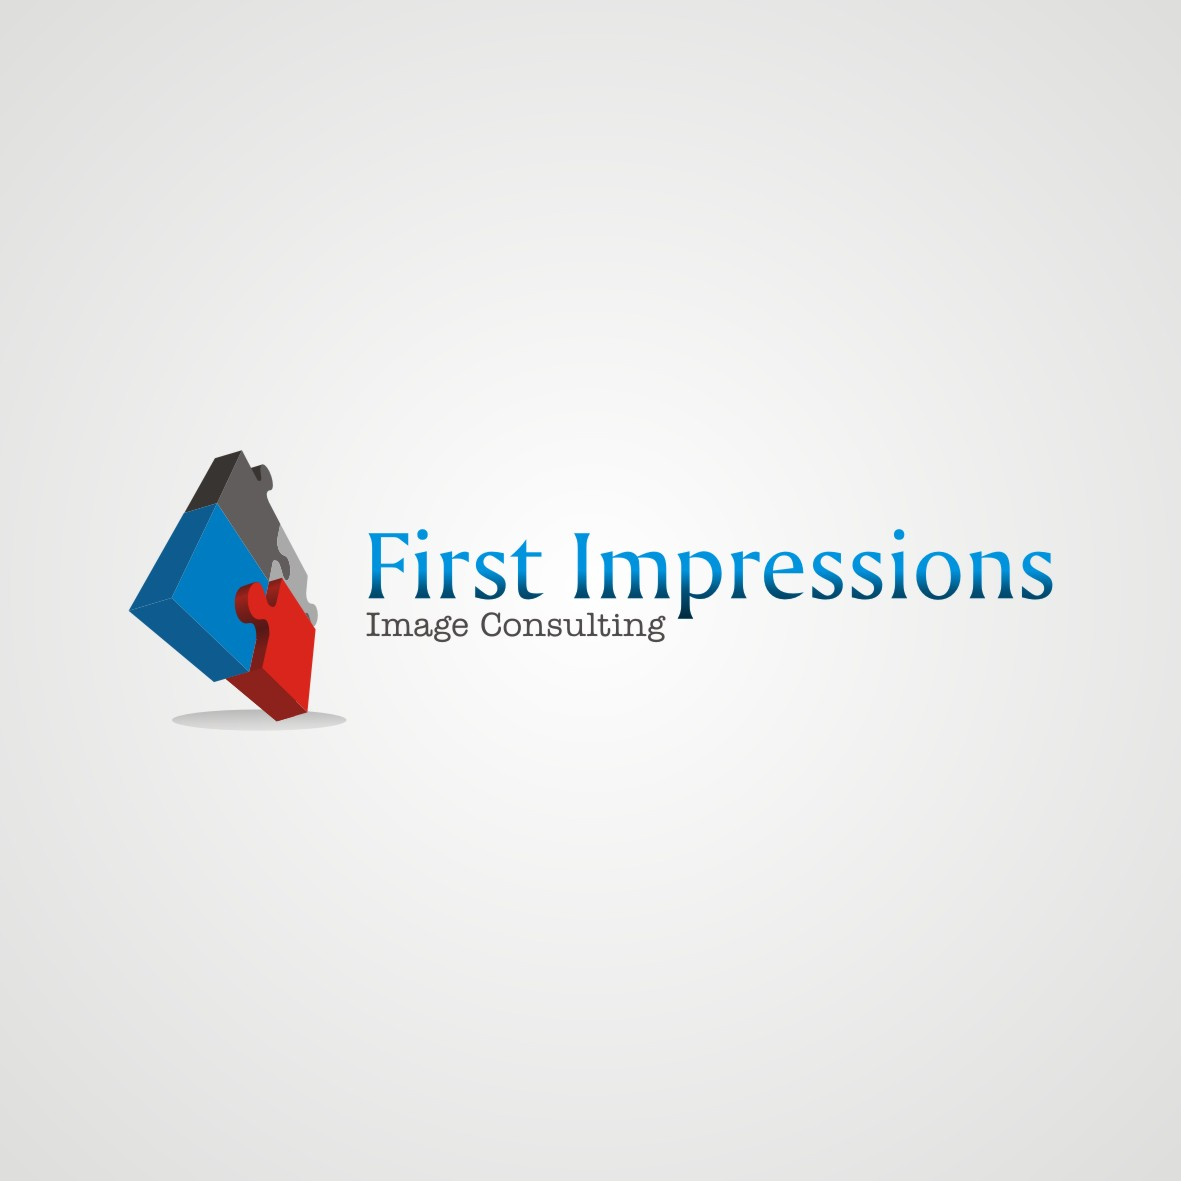 Logo Design by arteo_design - Entry No. 37 in the Logo Design Contest First Impressions Image Consulting Logo Design.